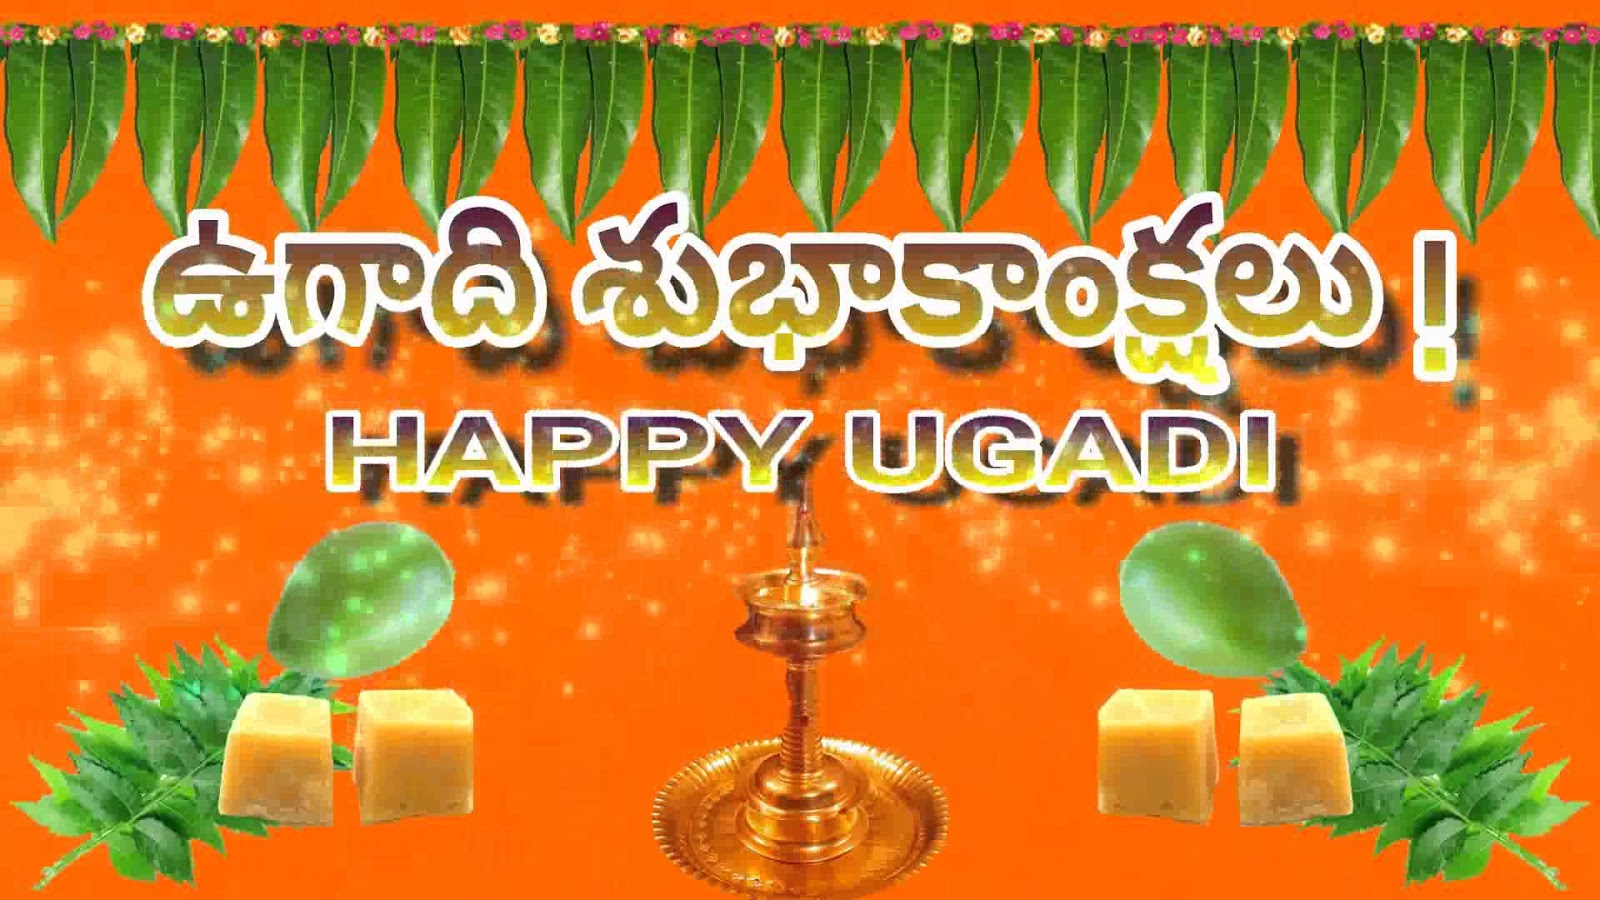 Best happy ugadi images pictures pics photos hd quality happy download ugadi 2018 wallpapers happy ugadi images happy ugadi 2018 ugadi greetings ugadi messages ugadi wishes download happy ugadi photos pics m4hsunfo Image collections